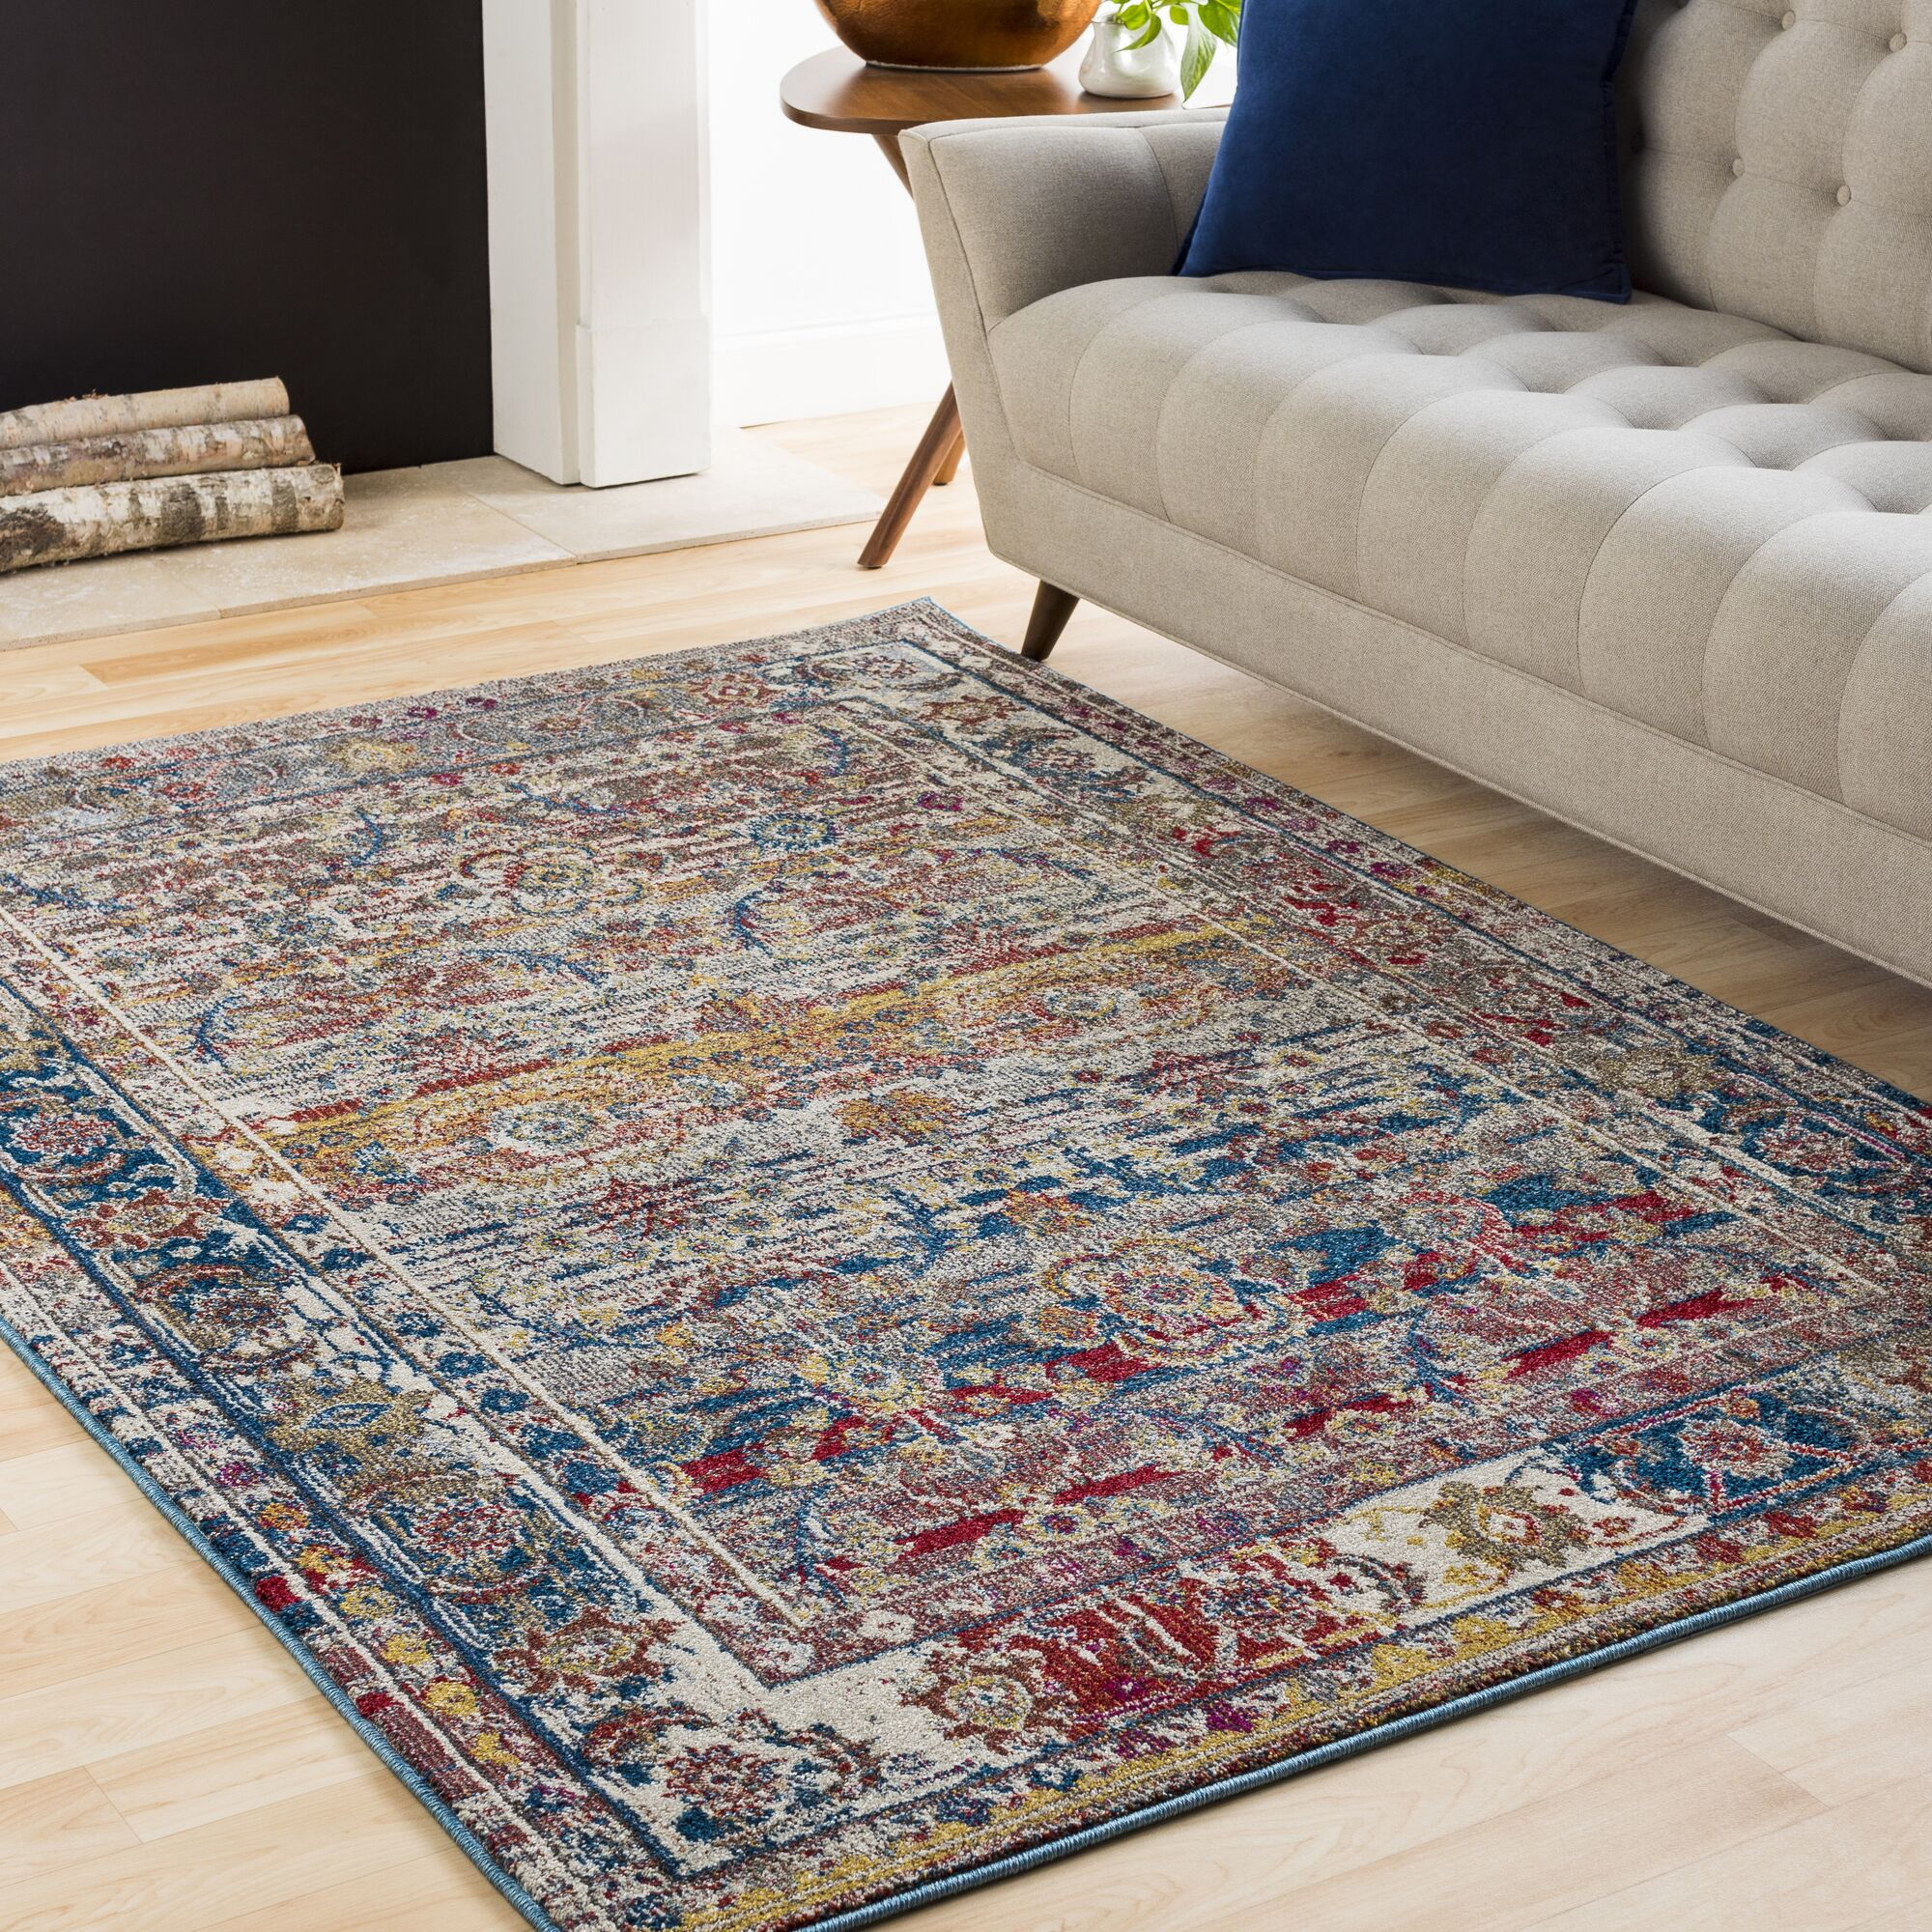 Walls Charcoal/Dark Red Area Rug Rug Size: Rectangle 6'7